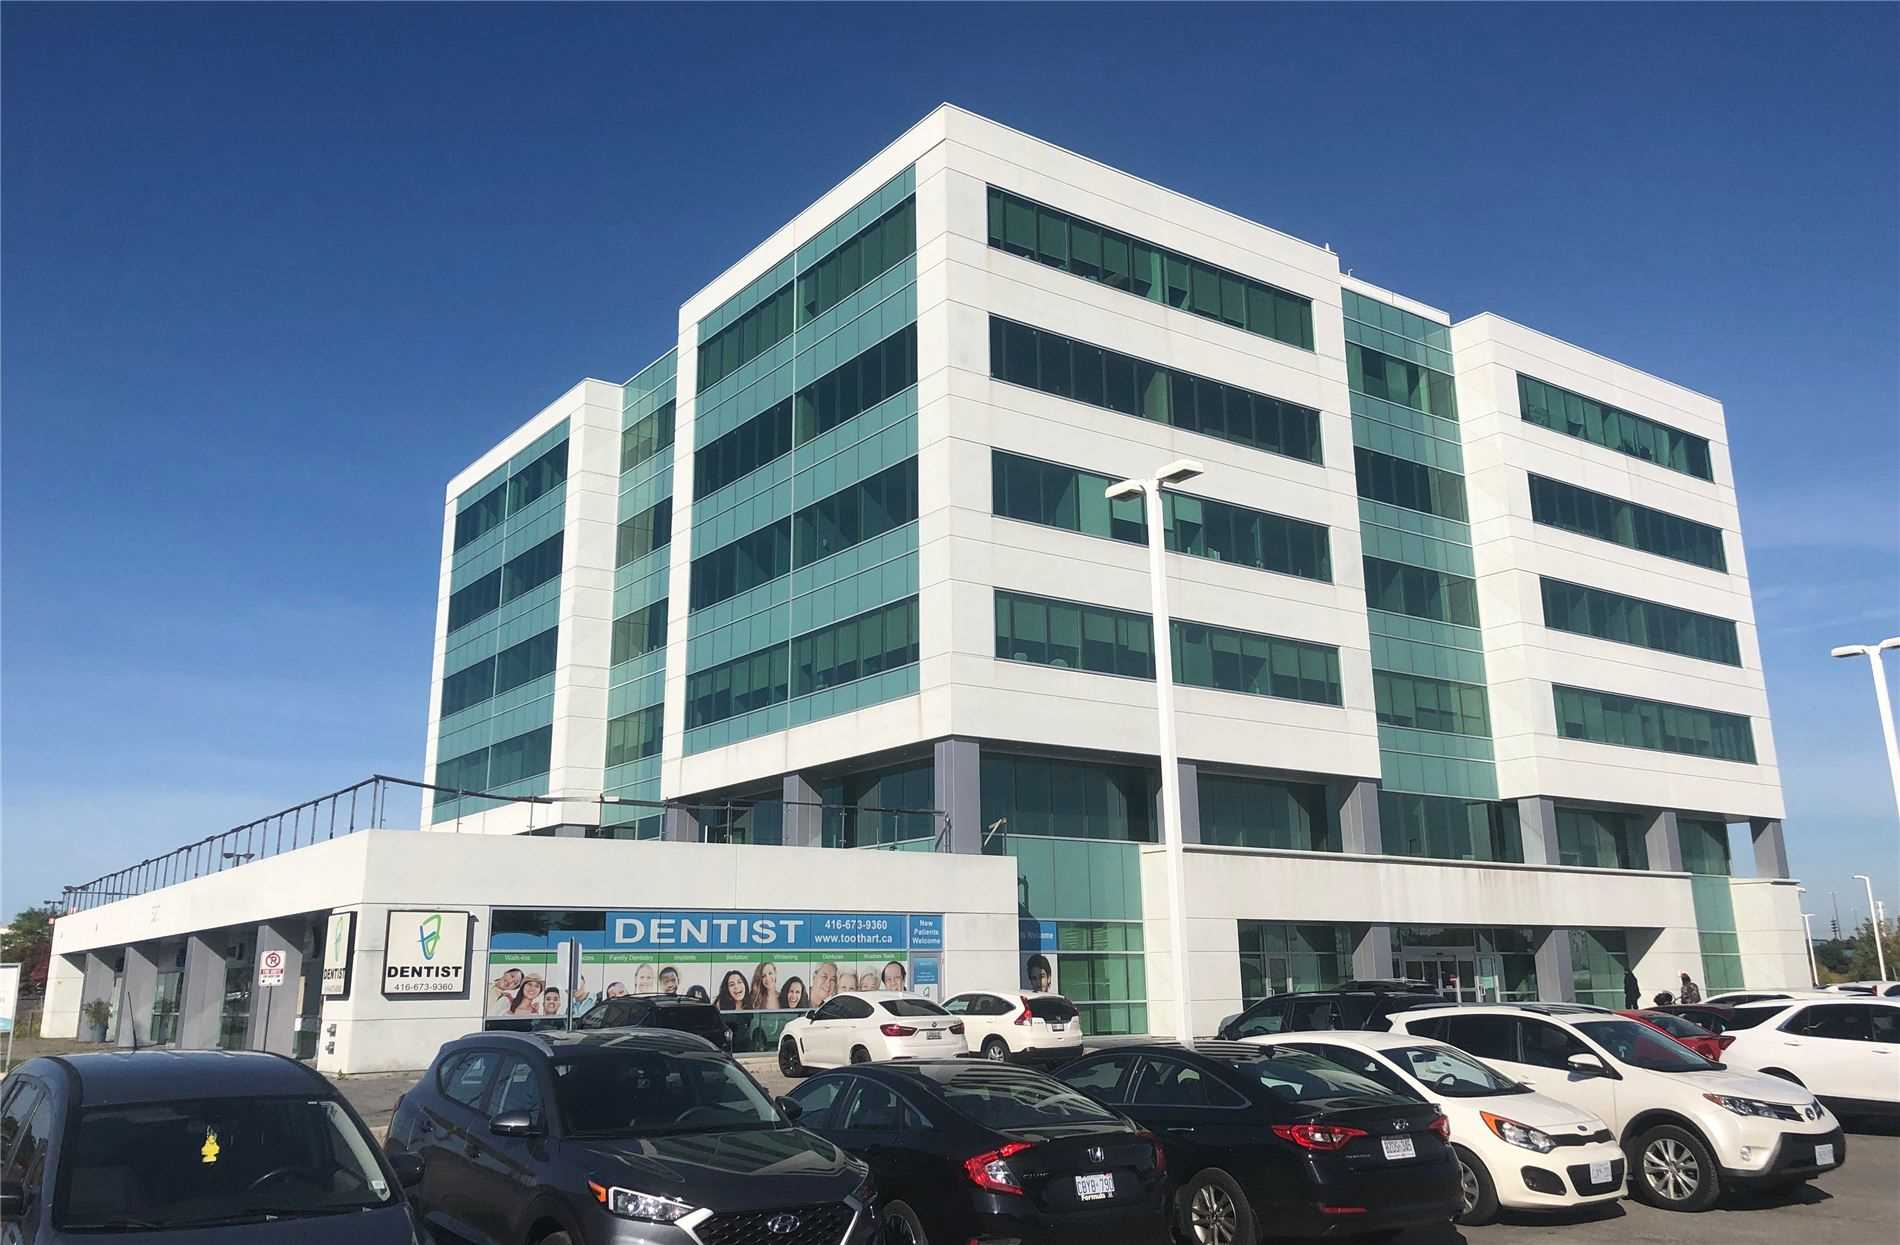 520 Ellesmere Rd 402, Wexford-Maryvale, Toronto, Ontario M1R4E6, ,Office,For Lease,Ellesmere,E4646314